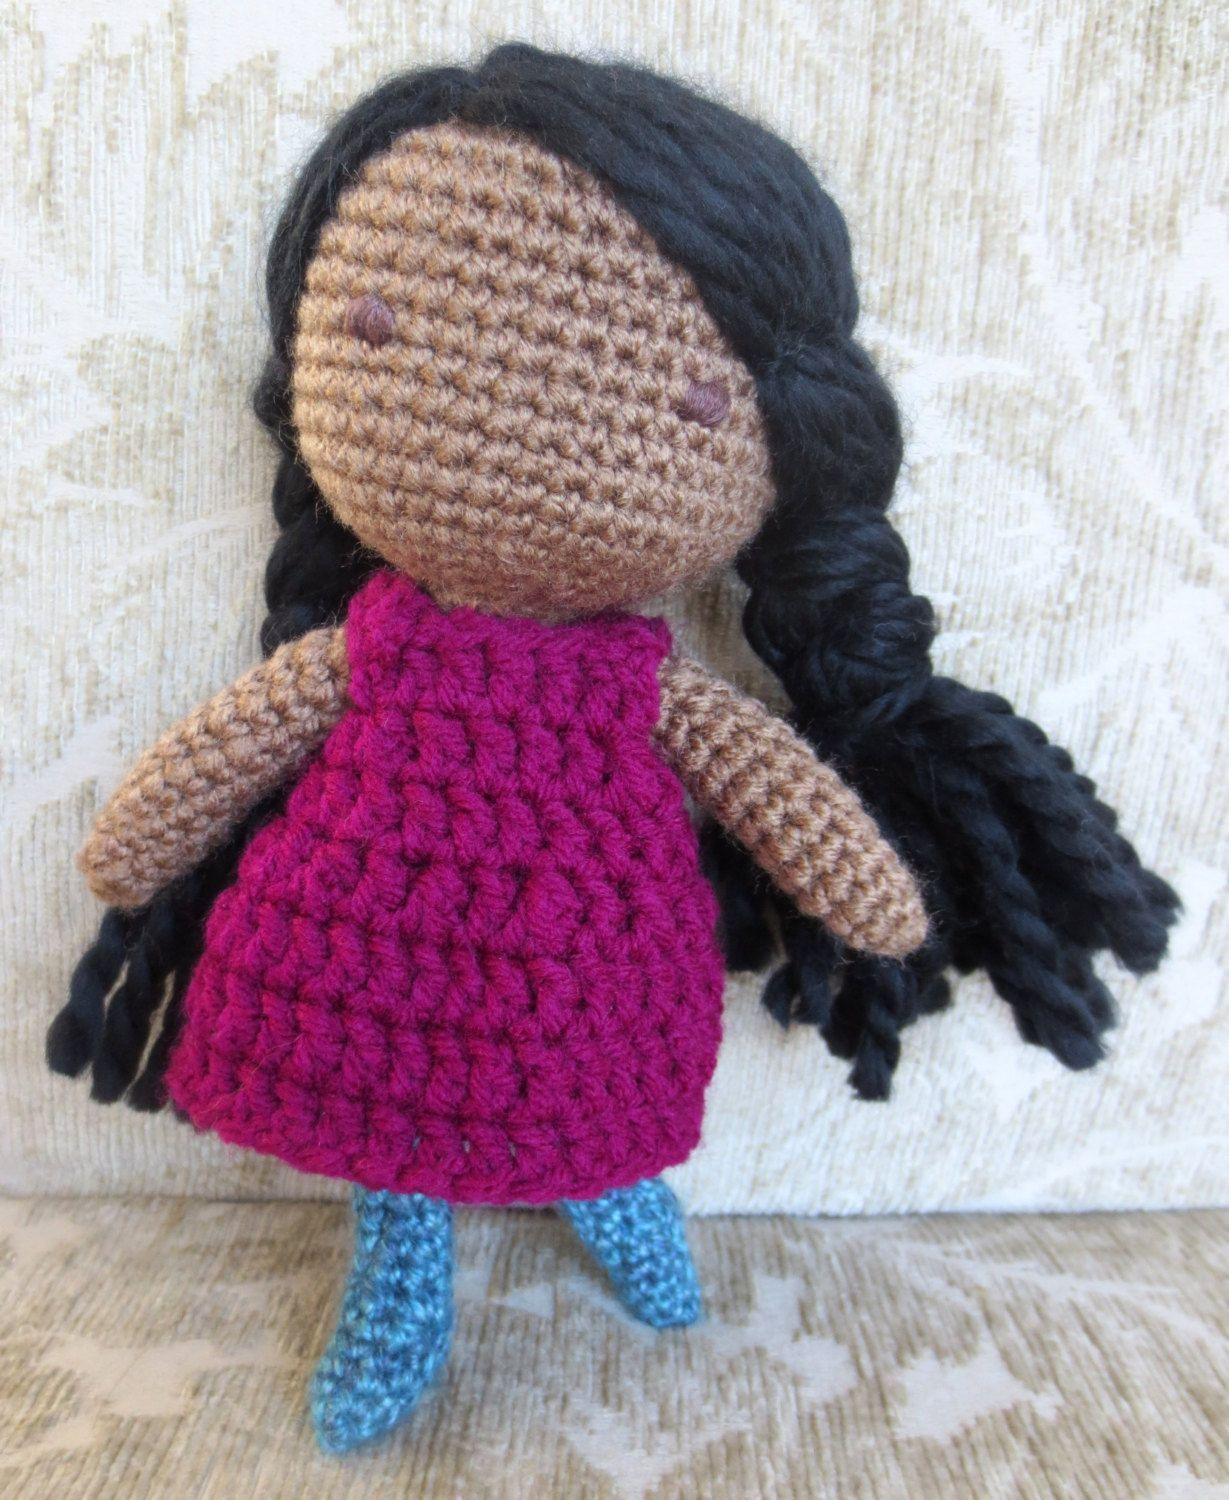 Adorable Crochet Doll For Sale On Etsy Handmade Mountainmamajody